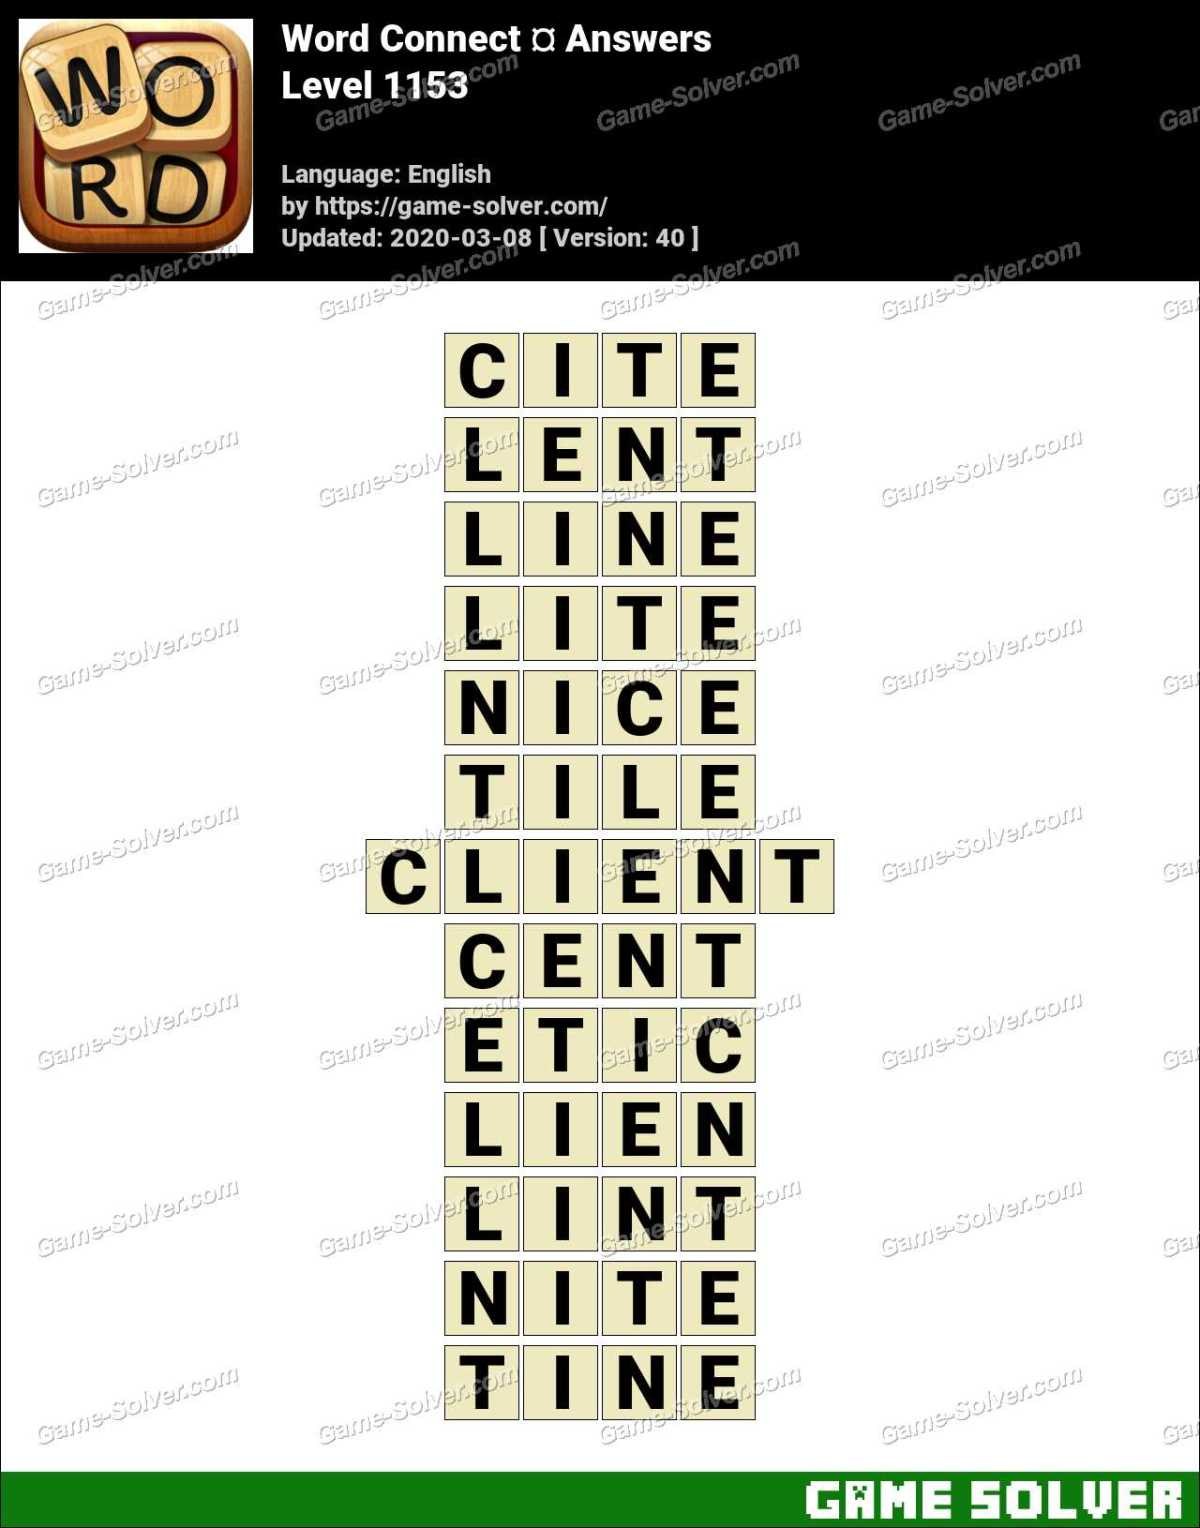 Word Connect Level 1153 Answers